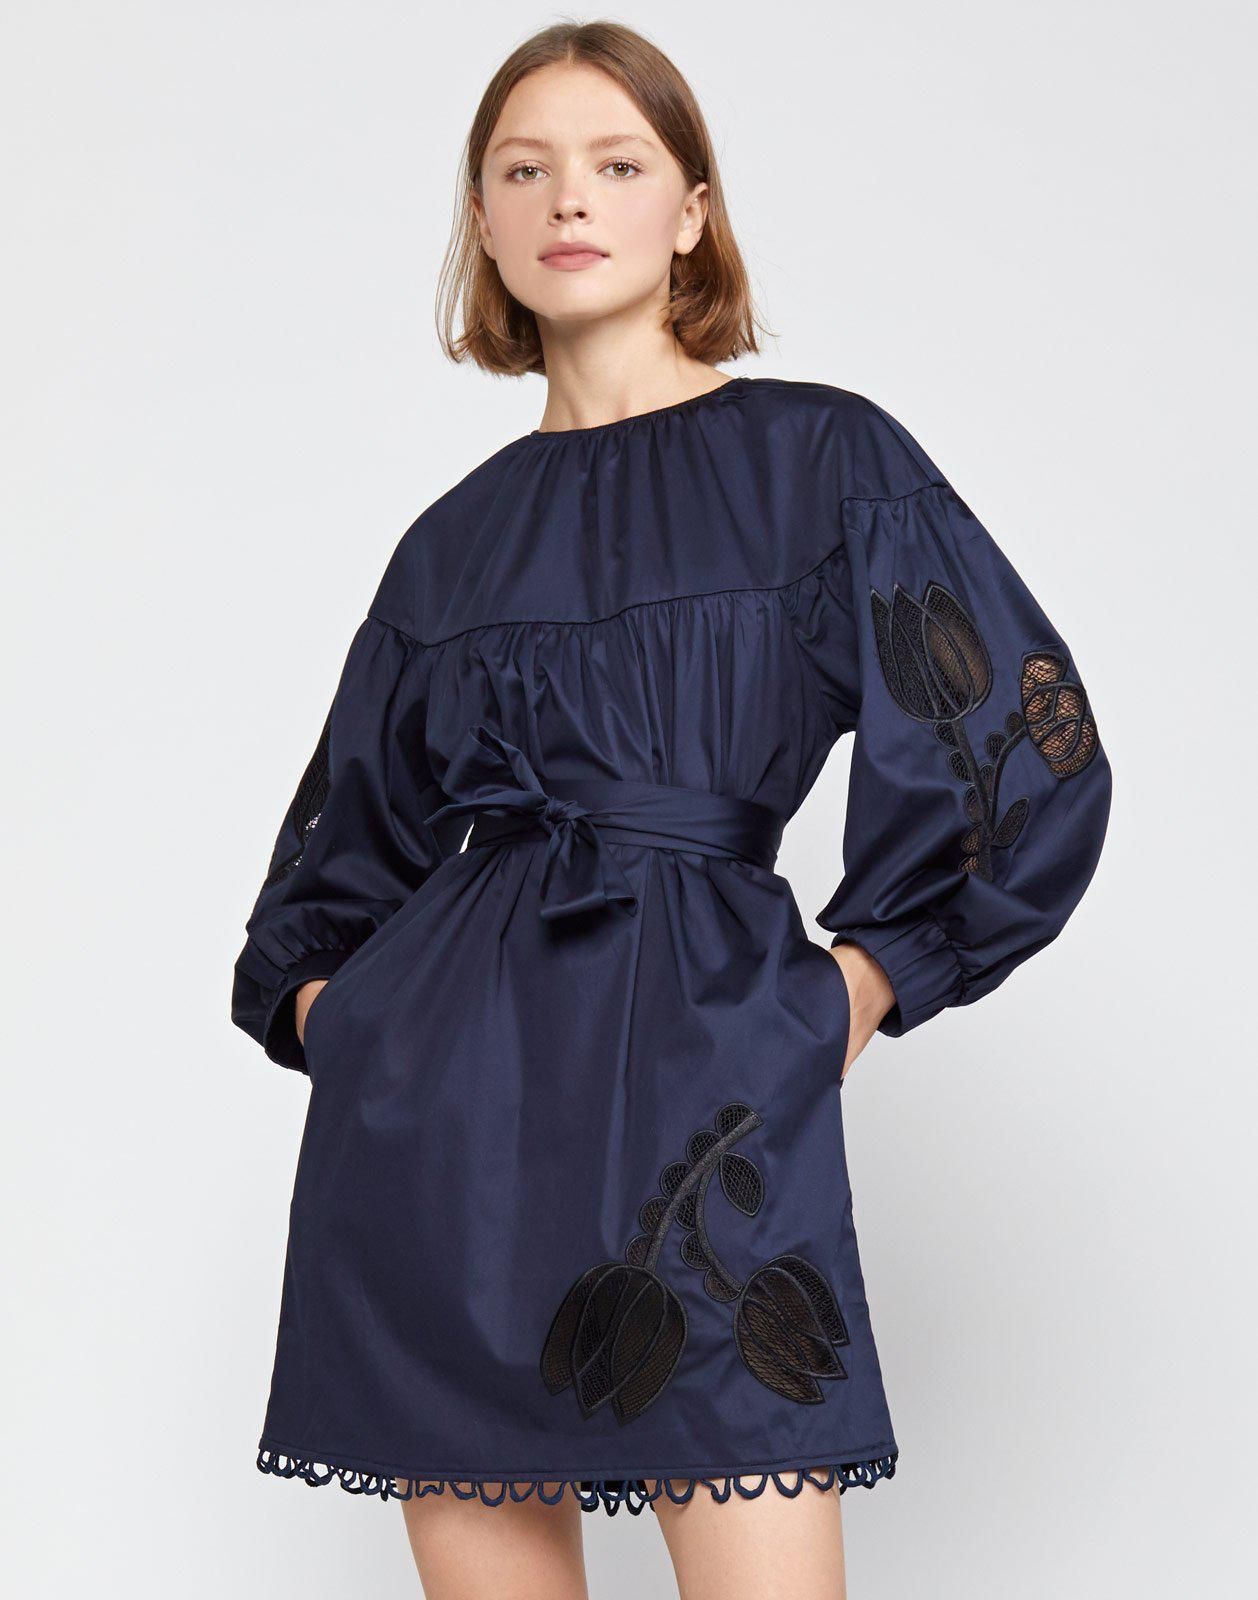 Tulip Lace Embroidered Dress